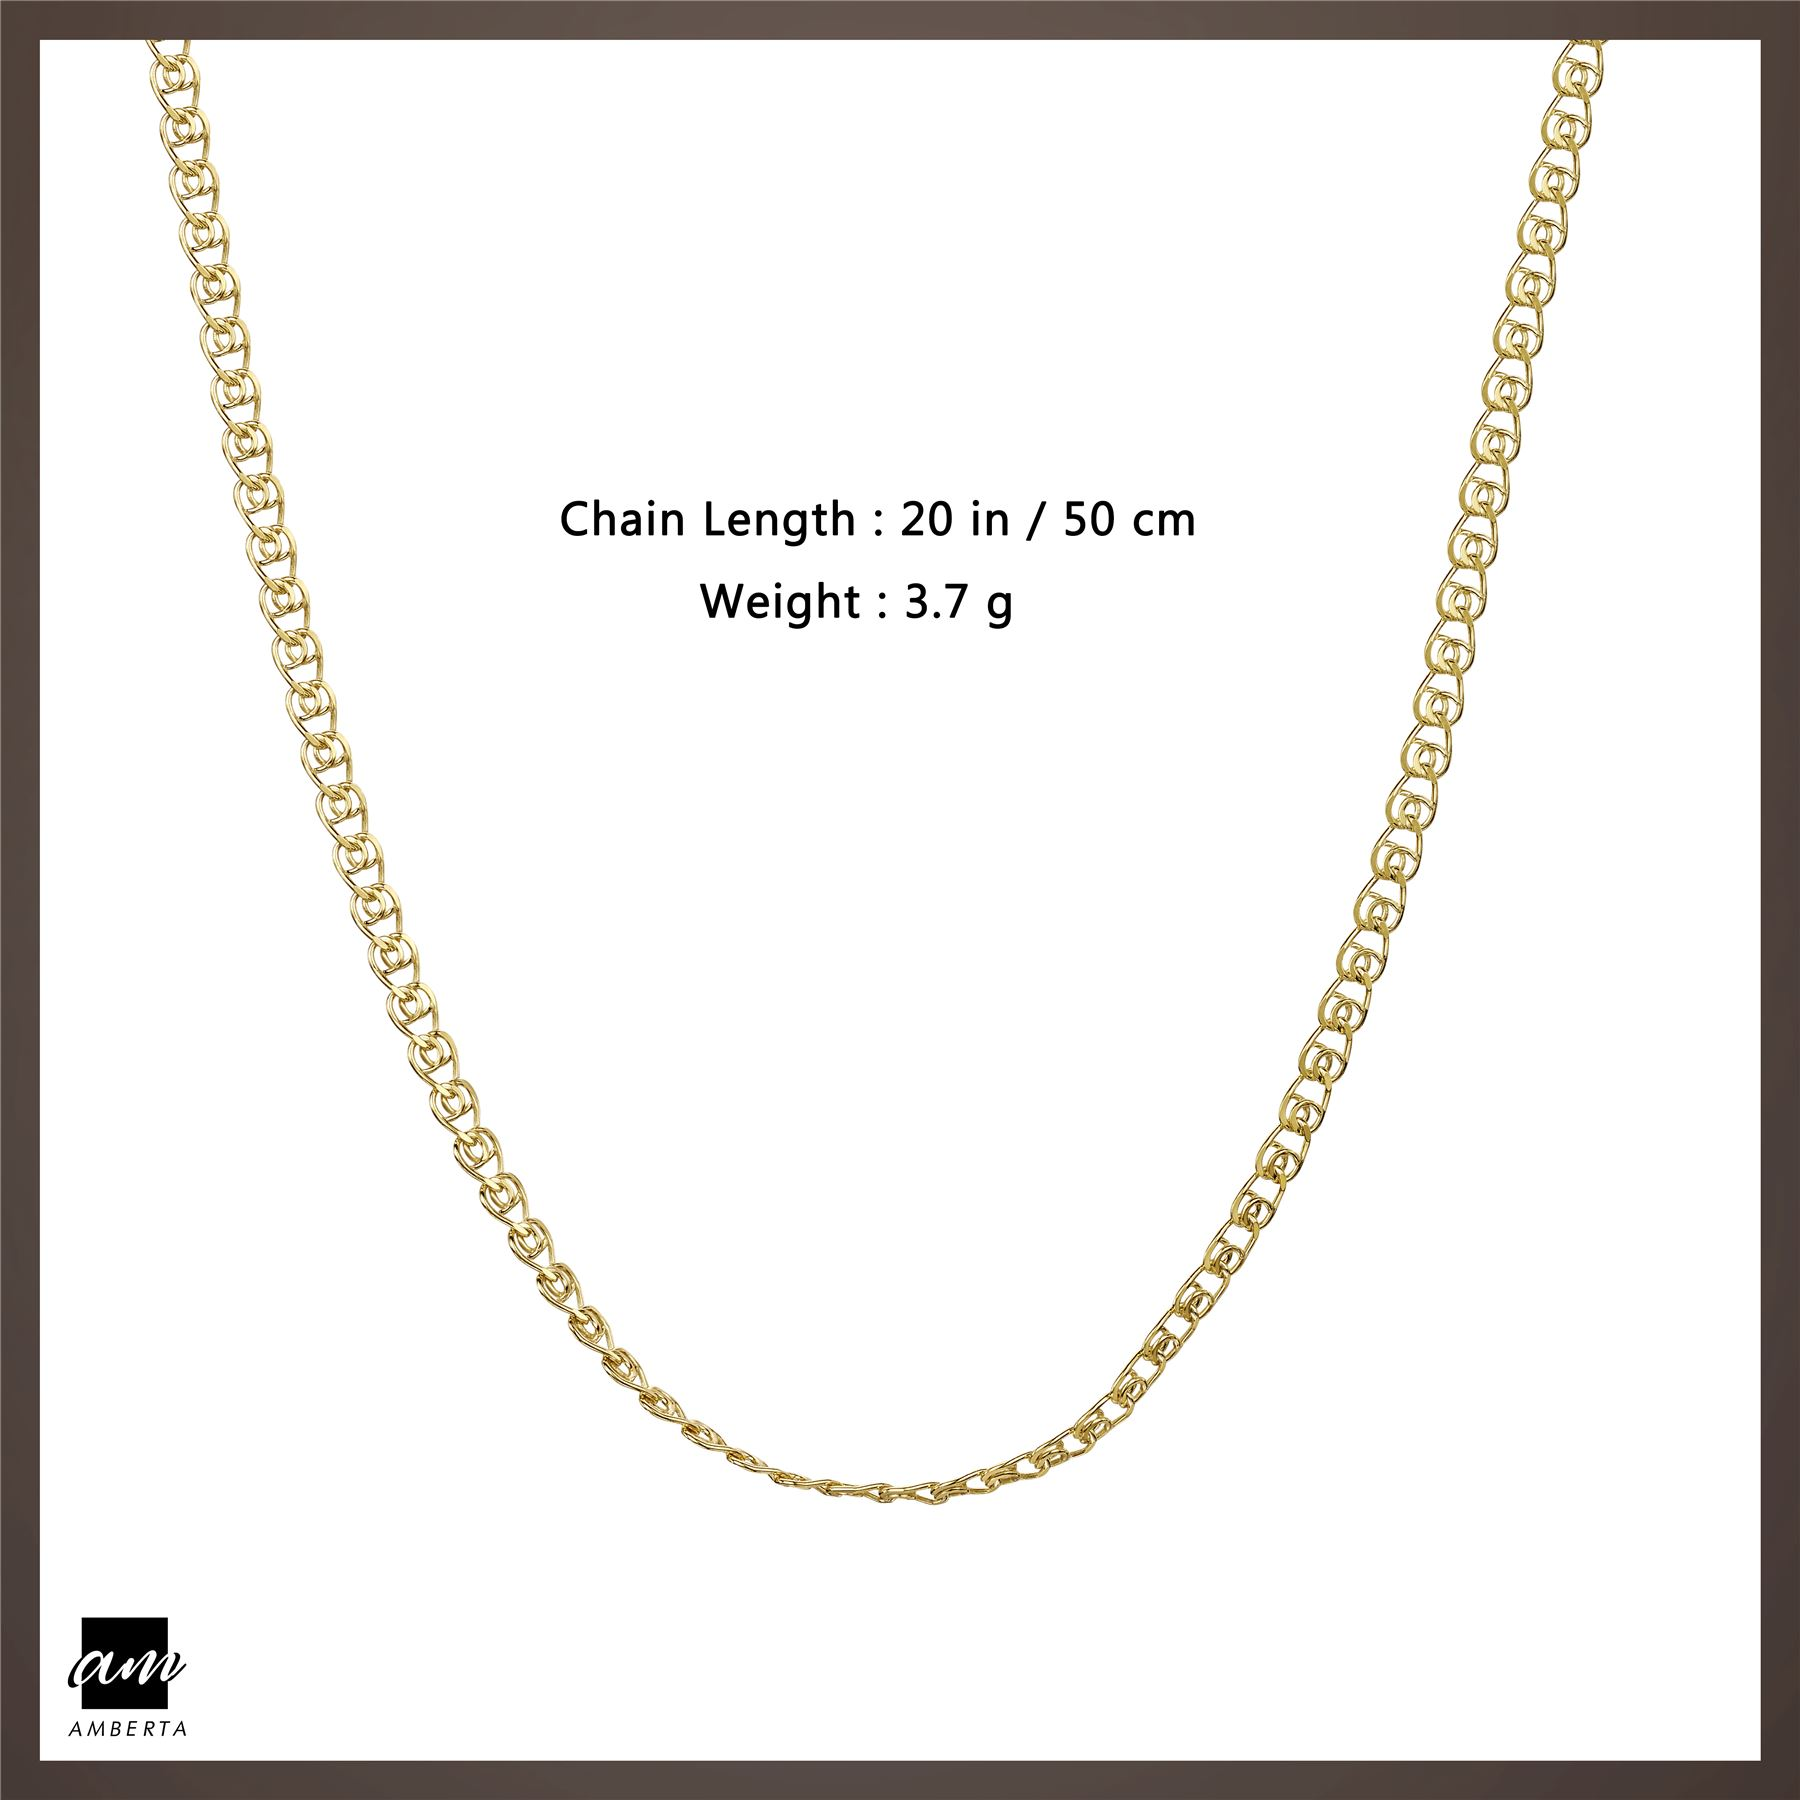 Amberta-Genuine-Gold-Plated-on-Real-925-Sterling-Silver-Necklace-Chain-Italy 縮圖 59